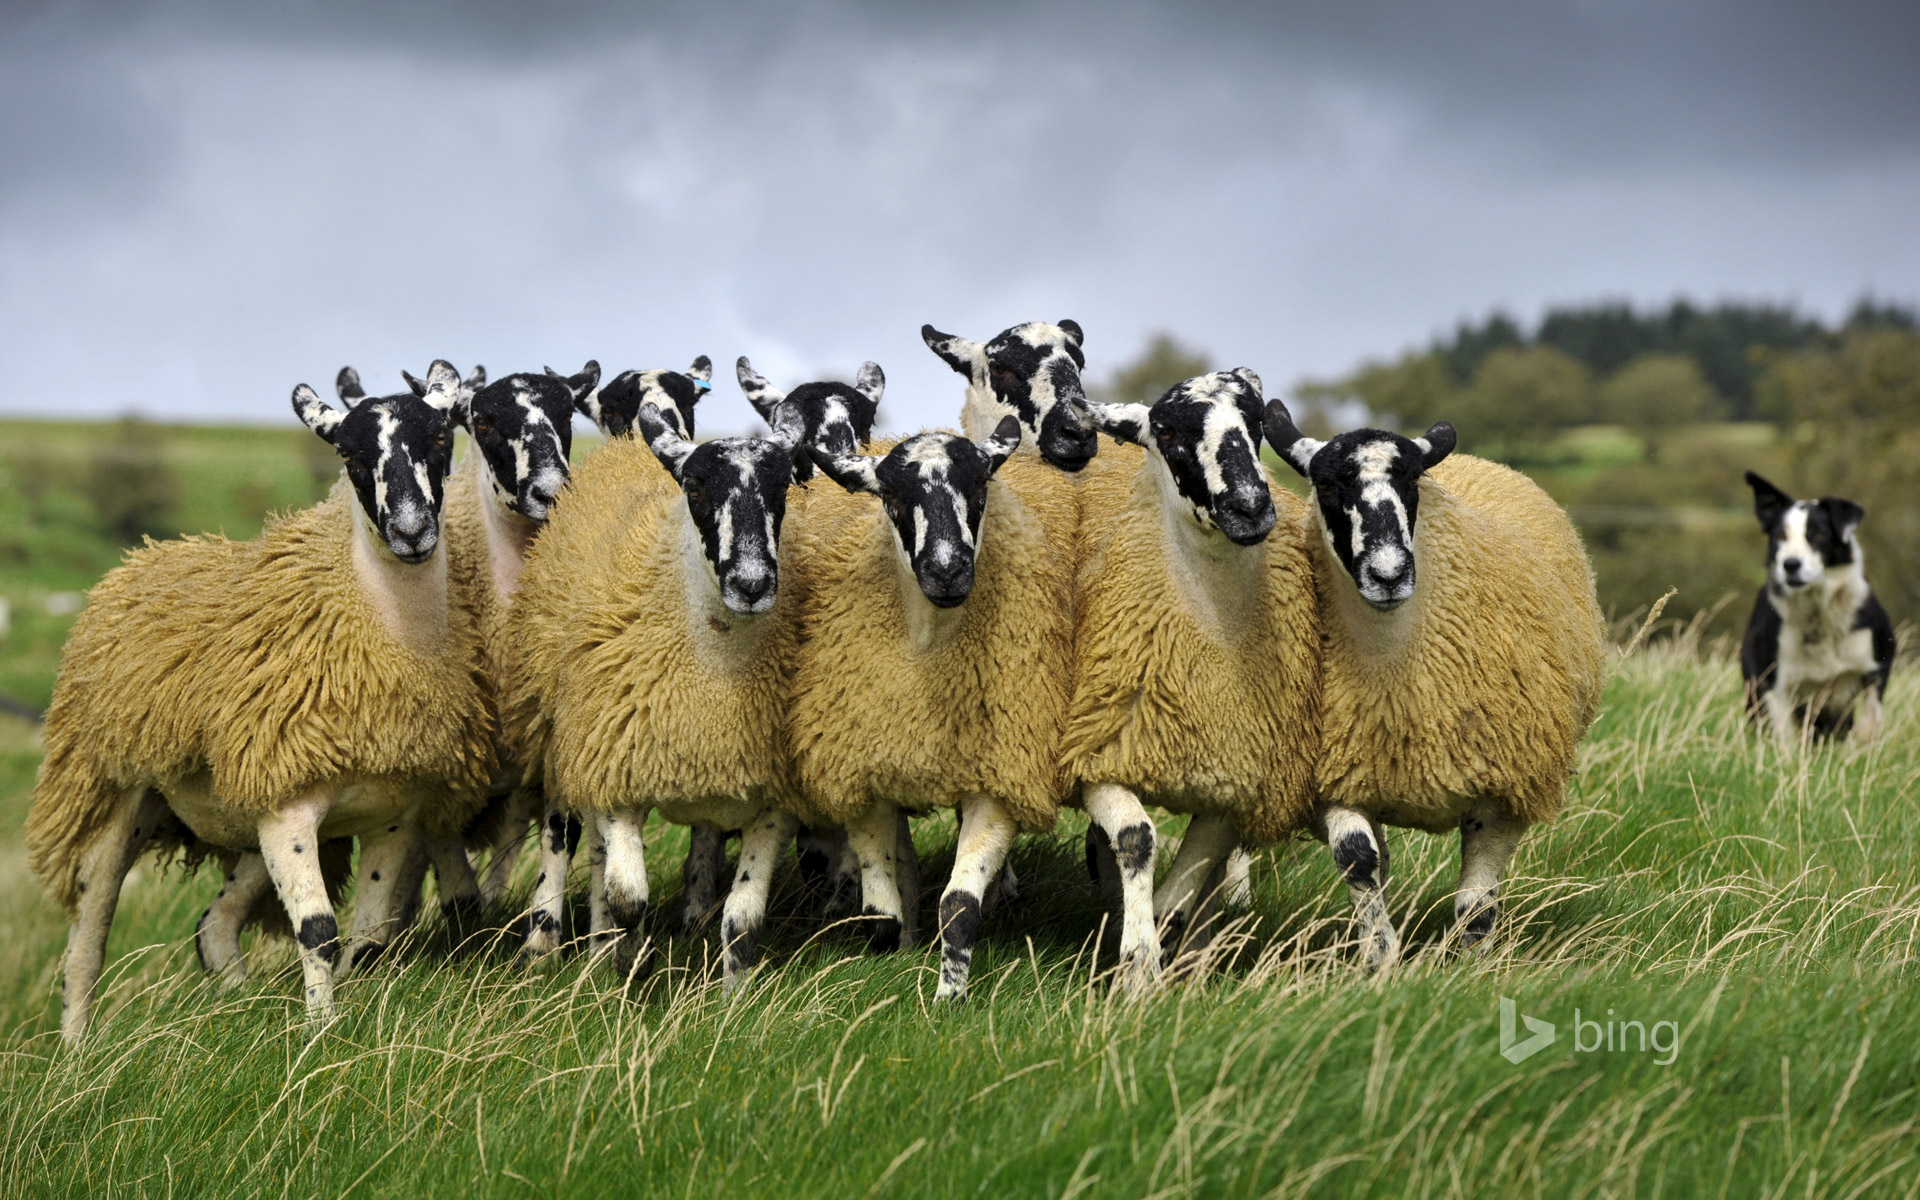 Sheep with a border collie in England